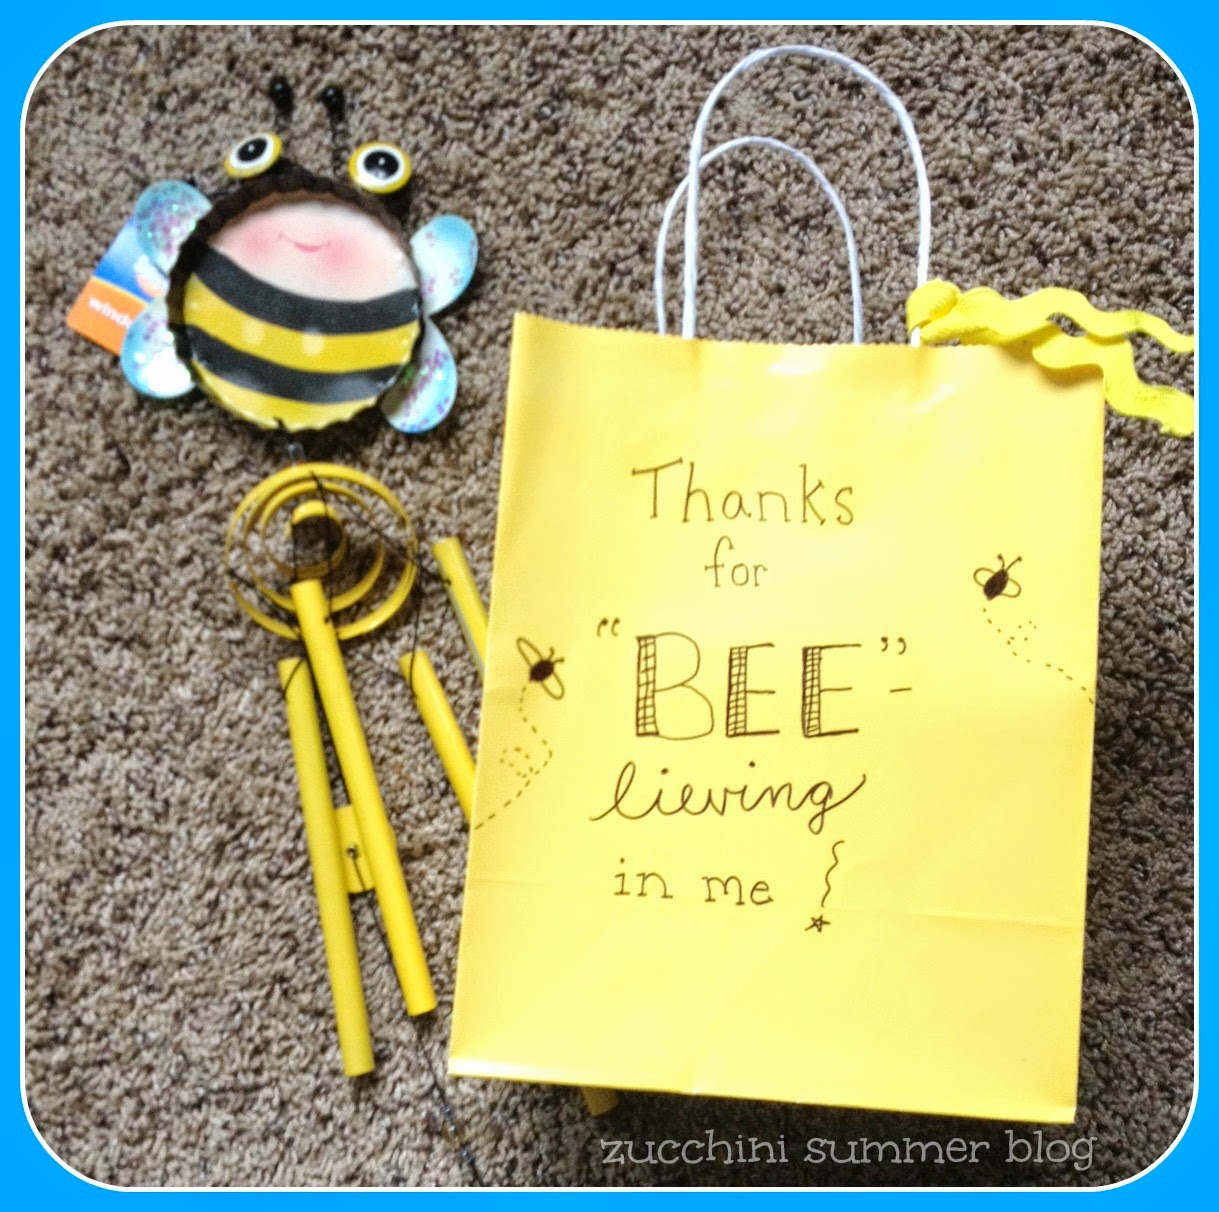 bee windchime, beelieving in me gift, gift wrap, teacher gift, student teacher gift, student teacher cooperating teacher gift, school of education gift, academic advisor gift, teacher graduation gift, wind chime, cvs wind chime, under $10 gift, principal gift, dance instructor gift, gymnastics coach gift